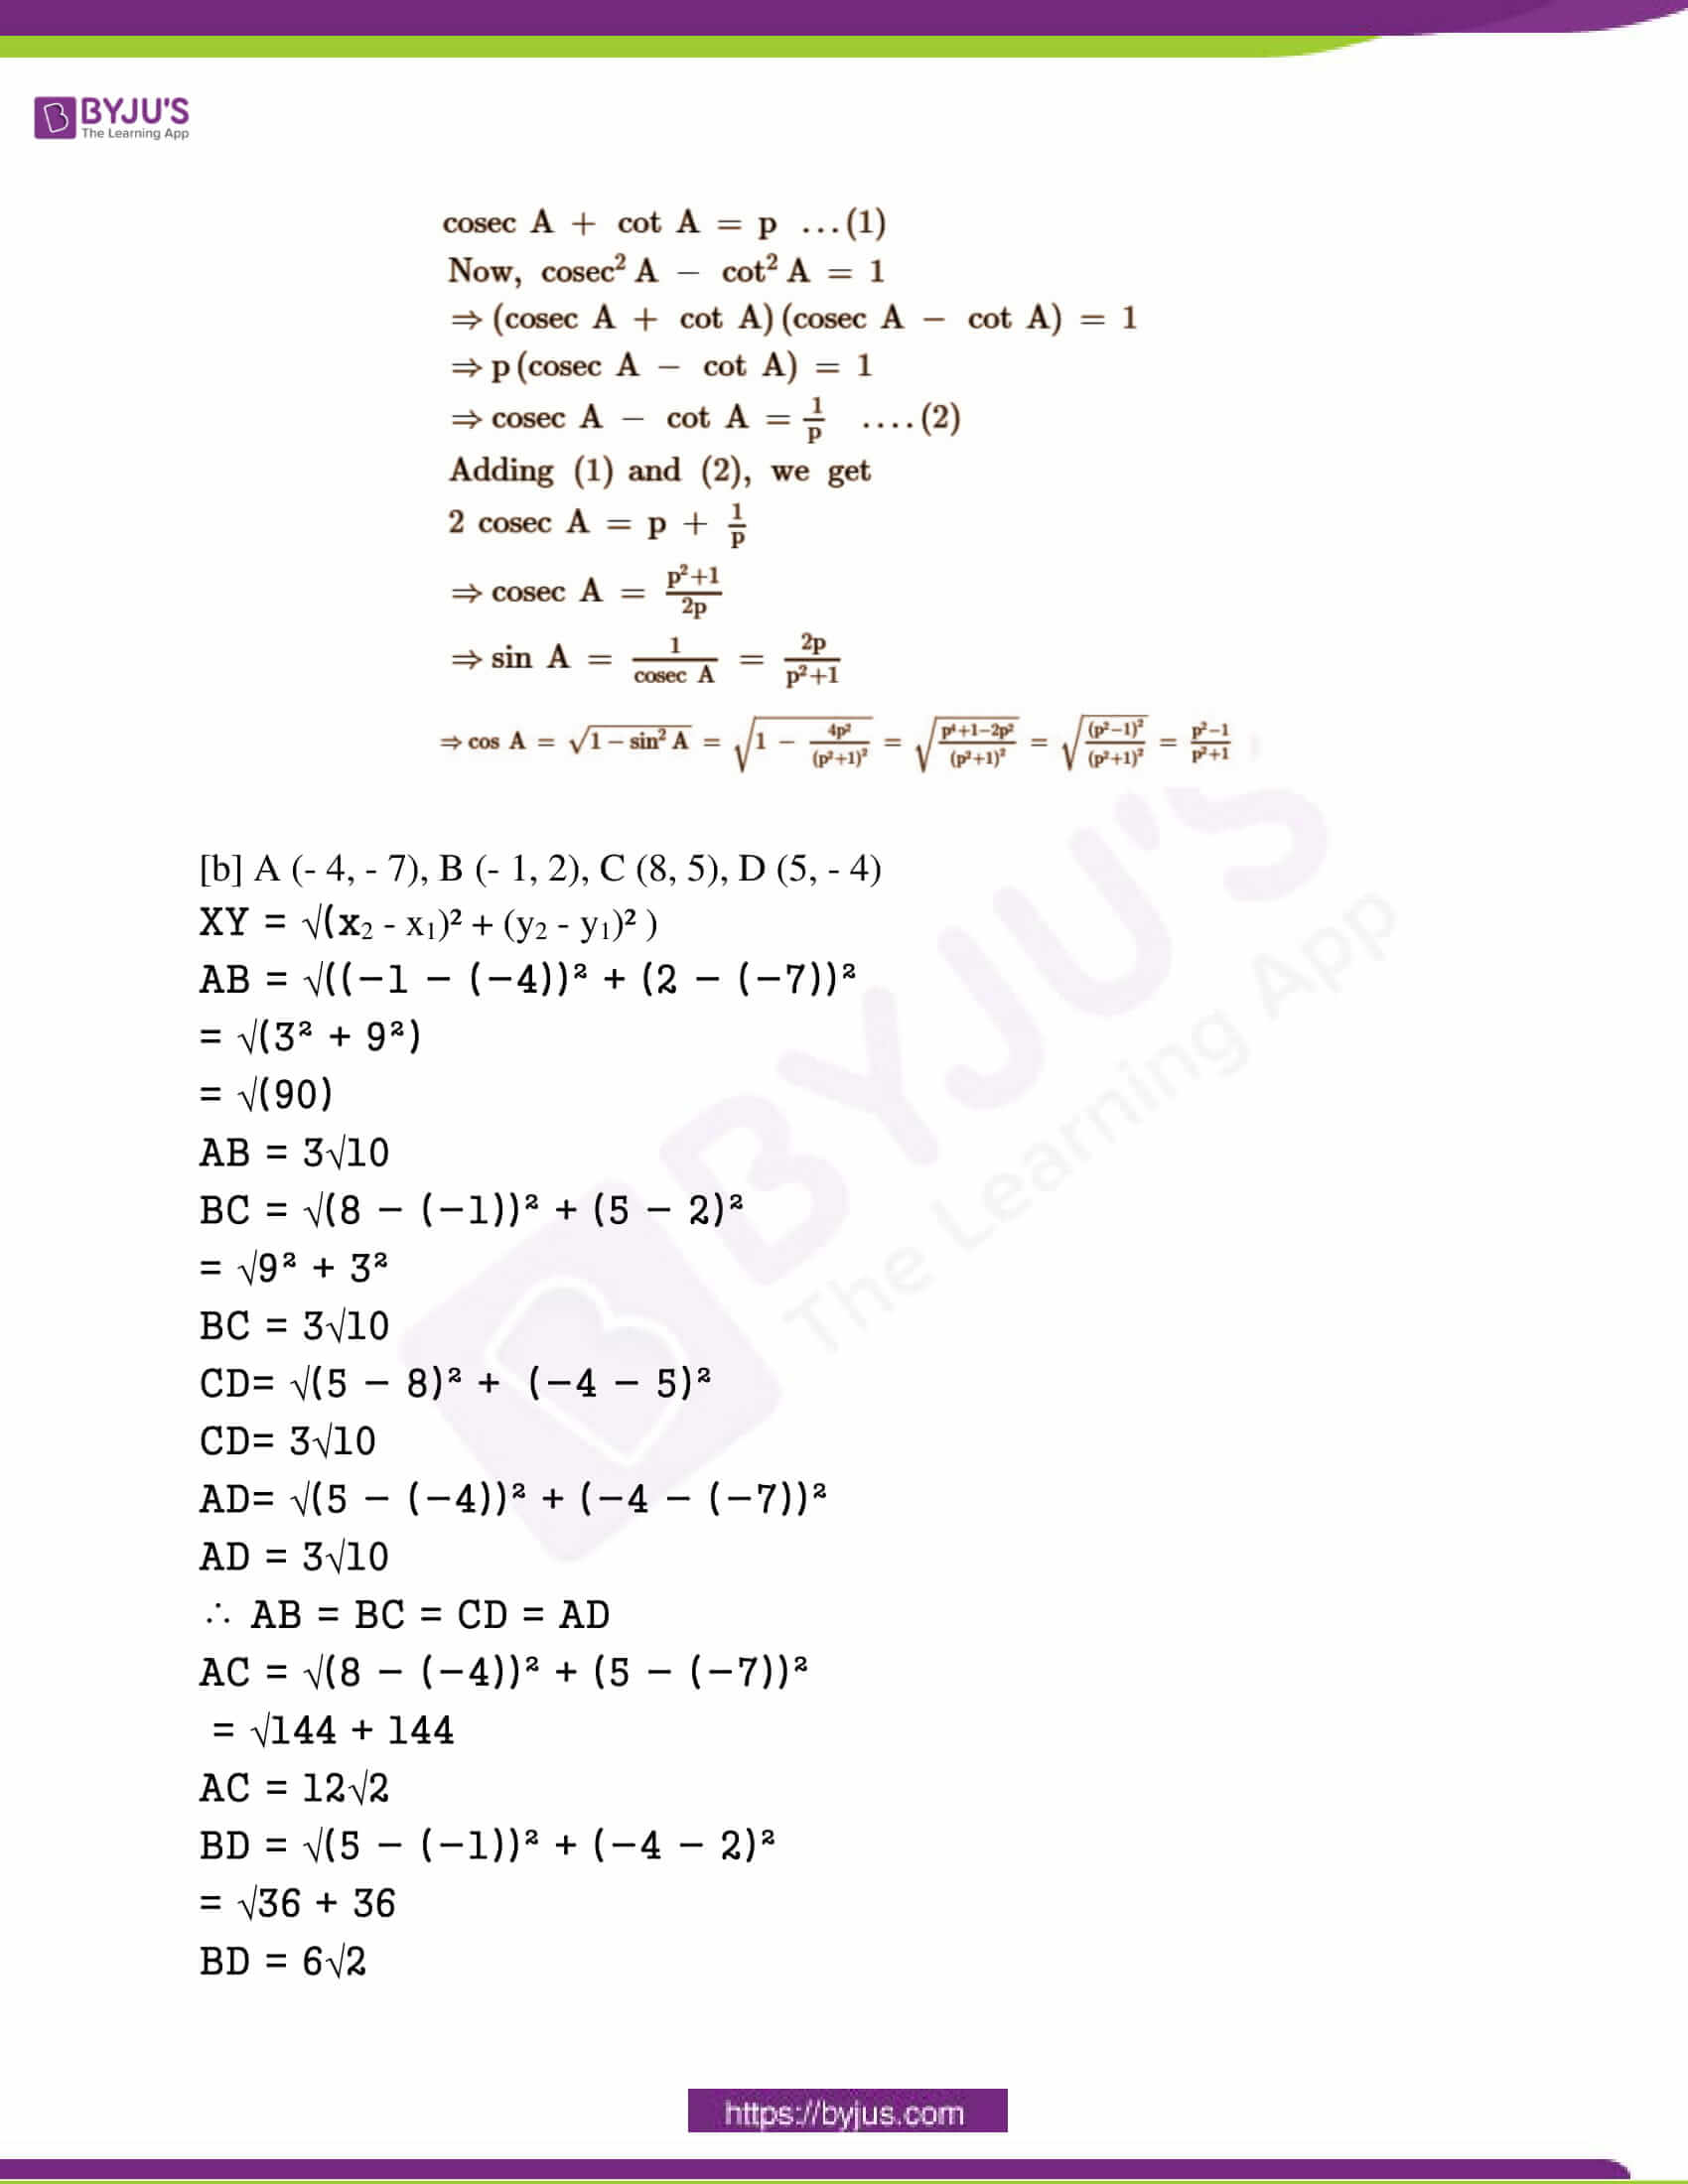 ap class 10 maths question paper 2 sol march 2018 06